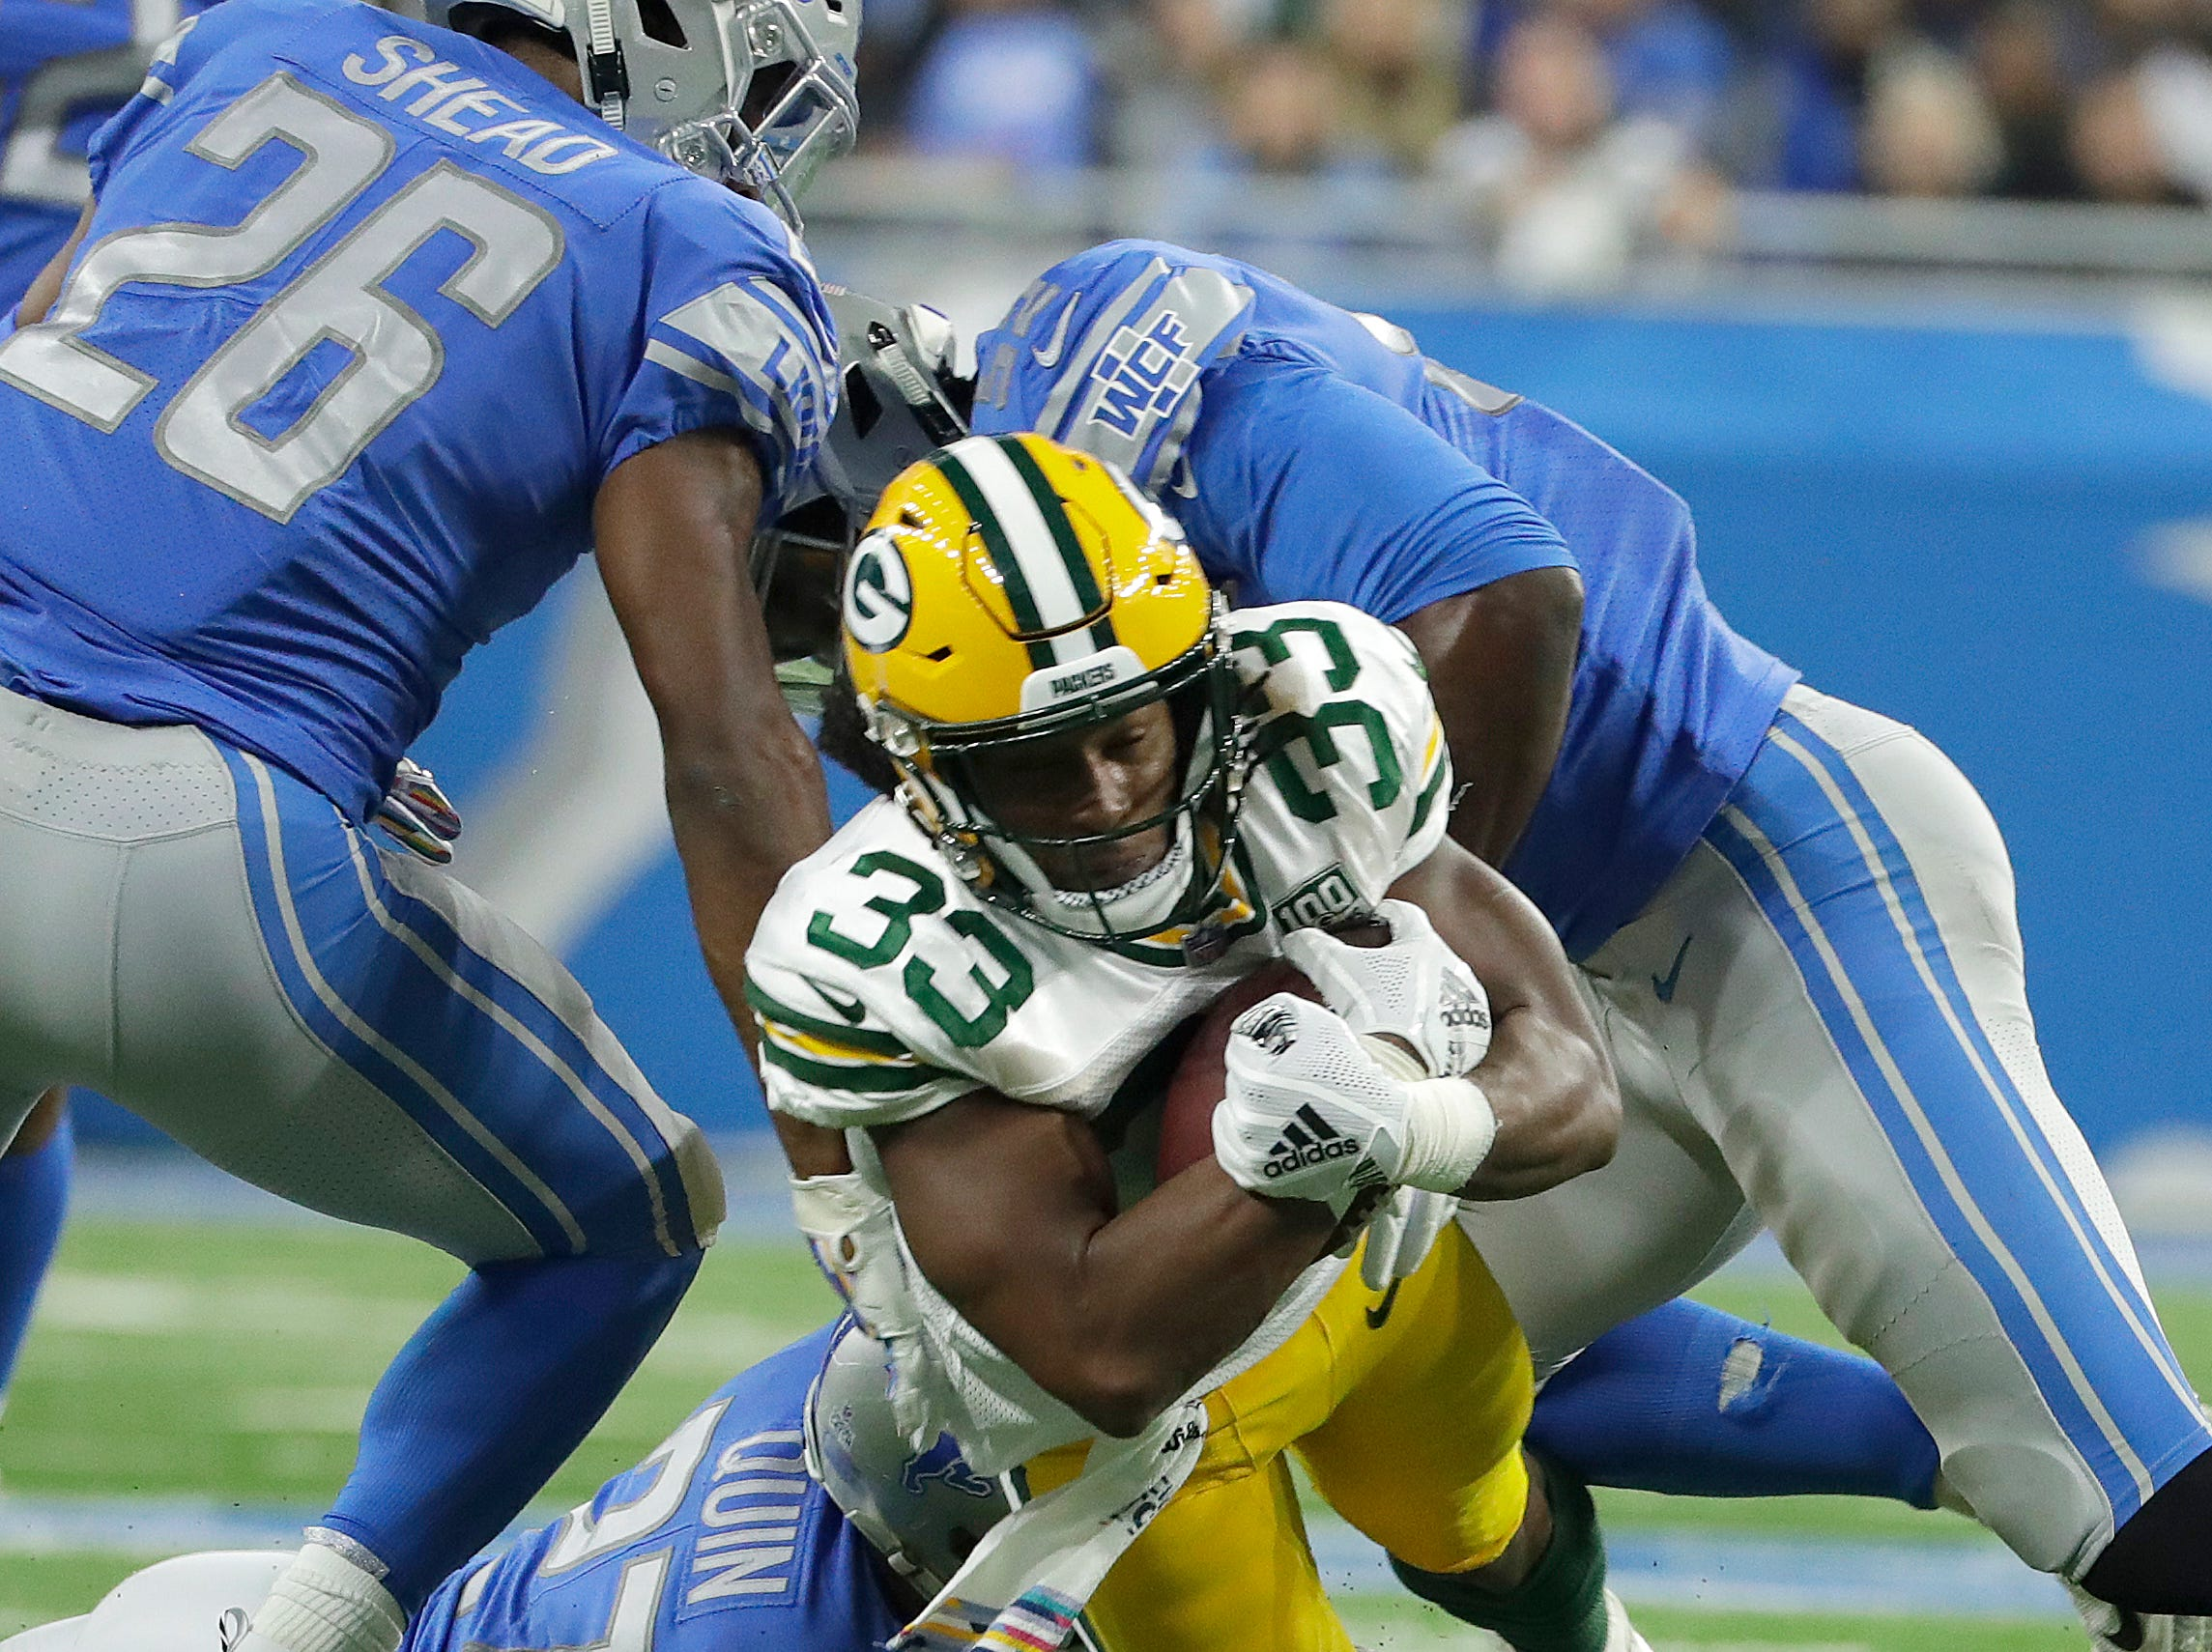 Green Bay Packers running back Aaron Jones (33) picks up 4 yards in the first half during the Green Bay Packers vs. Detroit Lions NFL game at Ford Field, Detroit, Sunday, October 7, 2018.   Rick Wood/Milwaukee Journal Sentinel. USA